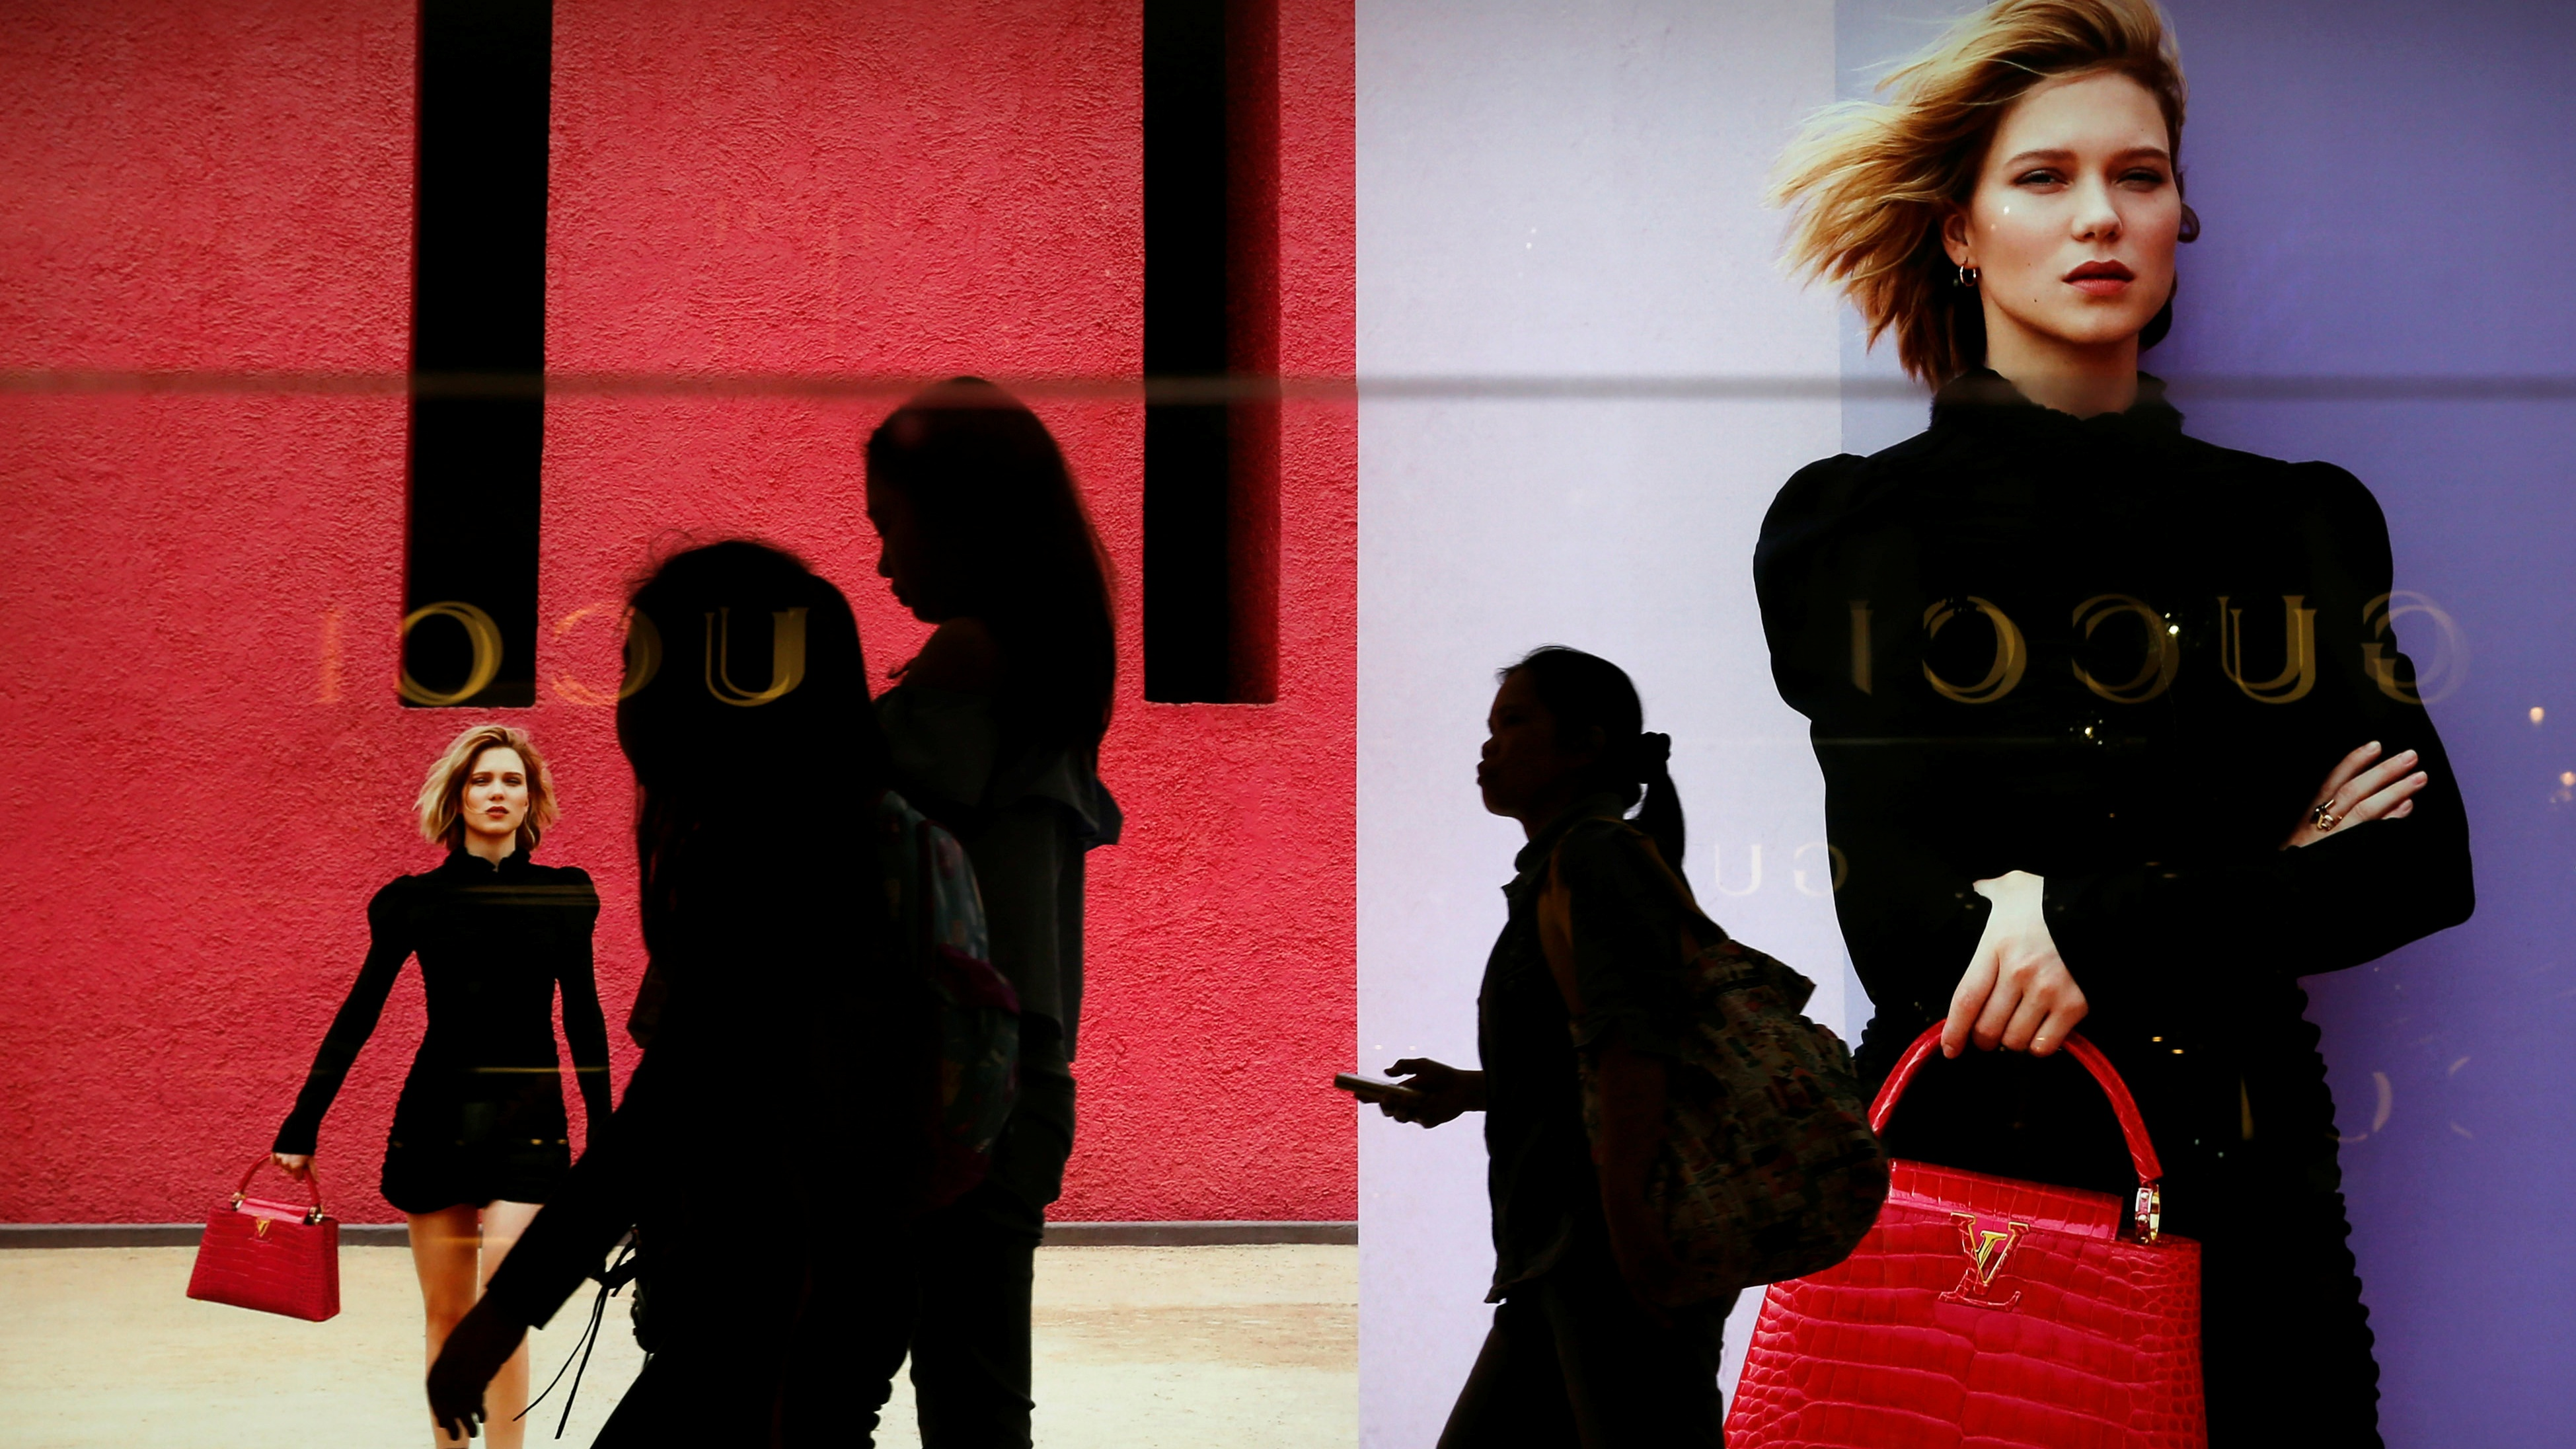 Women walk in front of a Louis Vuitton advertisement at a mall in Jakarta, Indonesia, June 17, 2016. REUTERS/Beawiharta